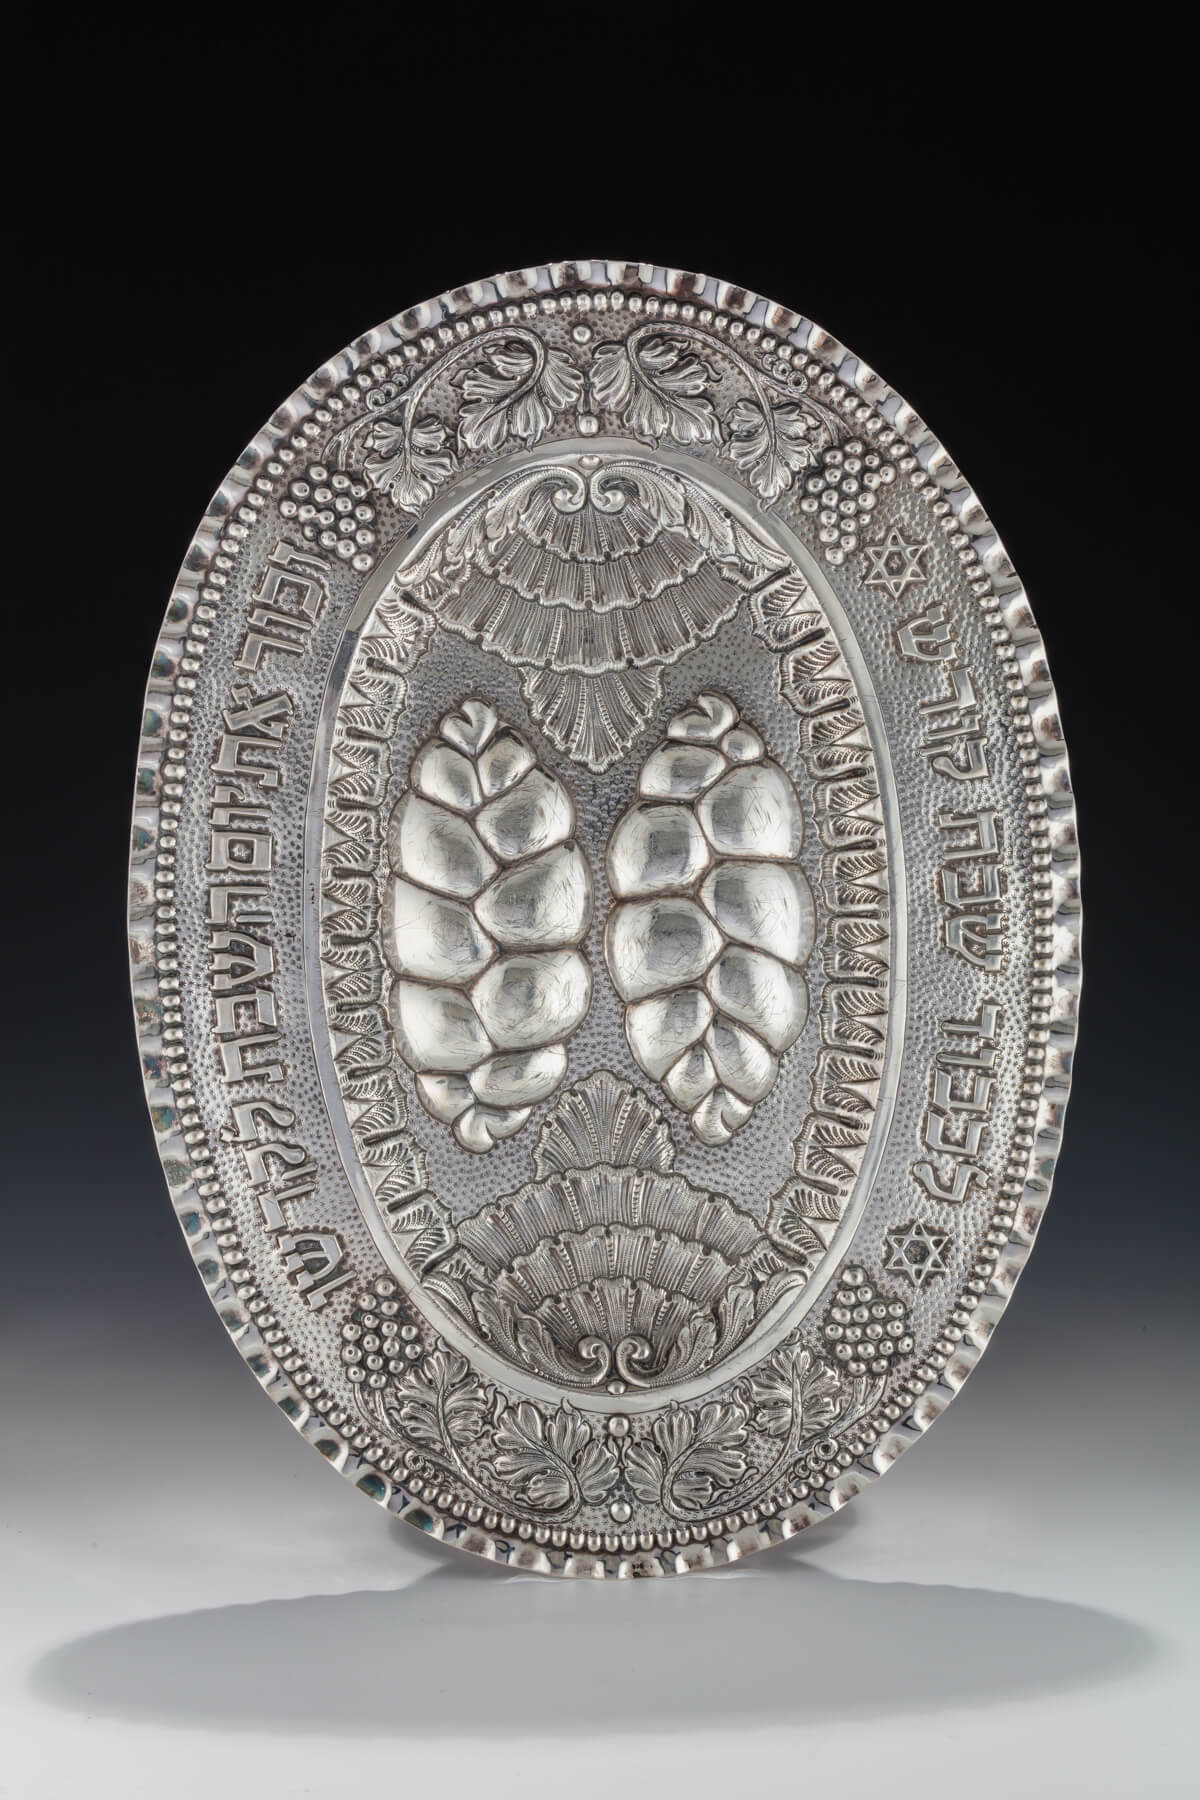 016. A Large Silver Challah Tray